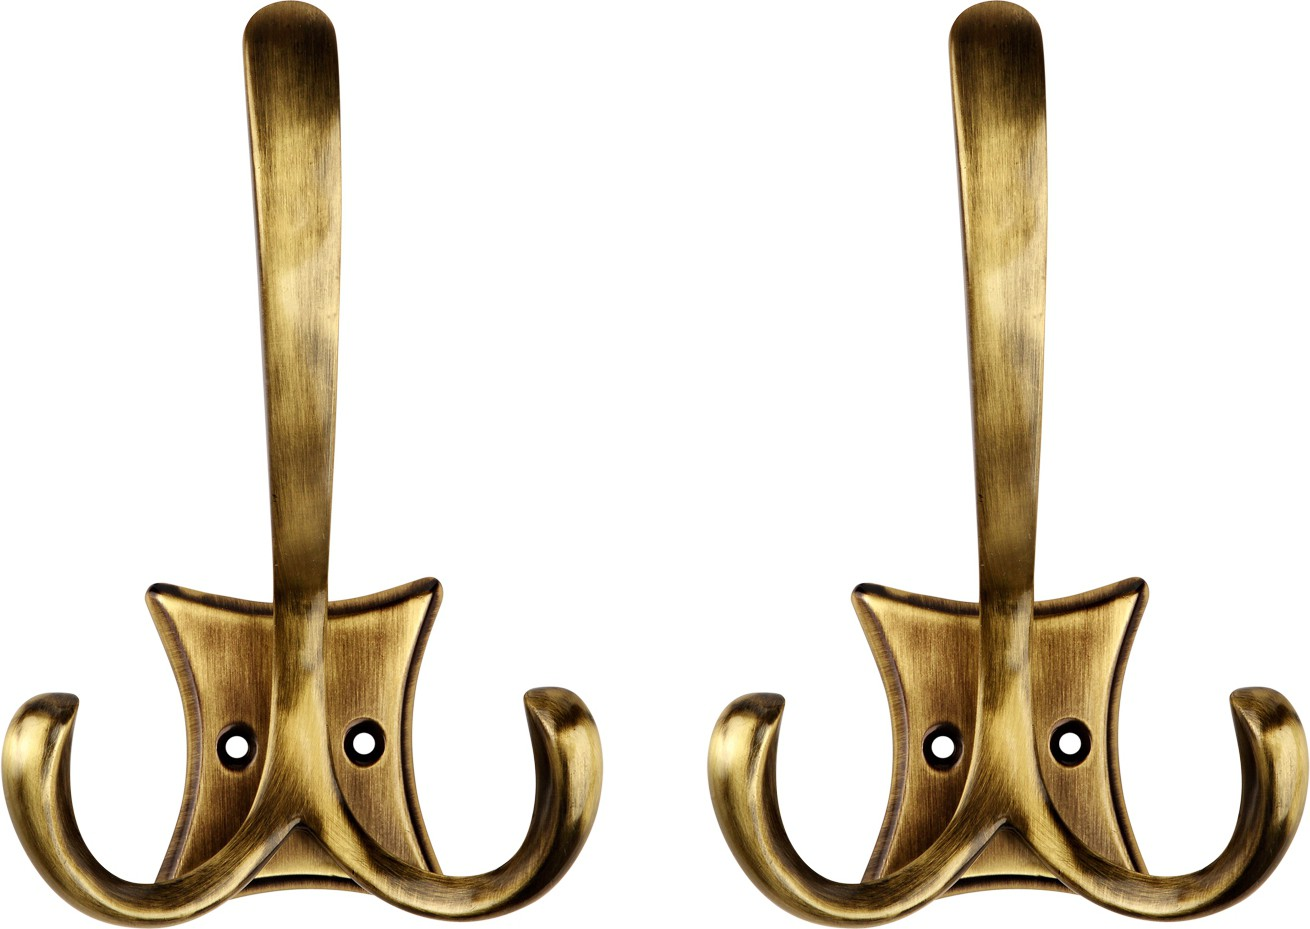 View Hobknobs Hat & Wall Robe/Coat/Clothes Antique Brass Hook Shaped Back Plate Brass Wall Shelf(Number of Shelves - 1, Brown) Furniture (Hobknobs)